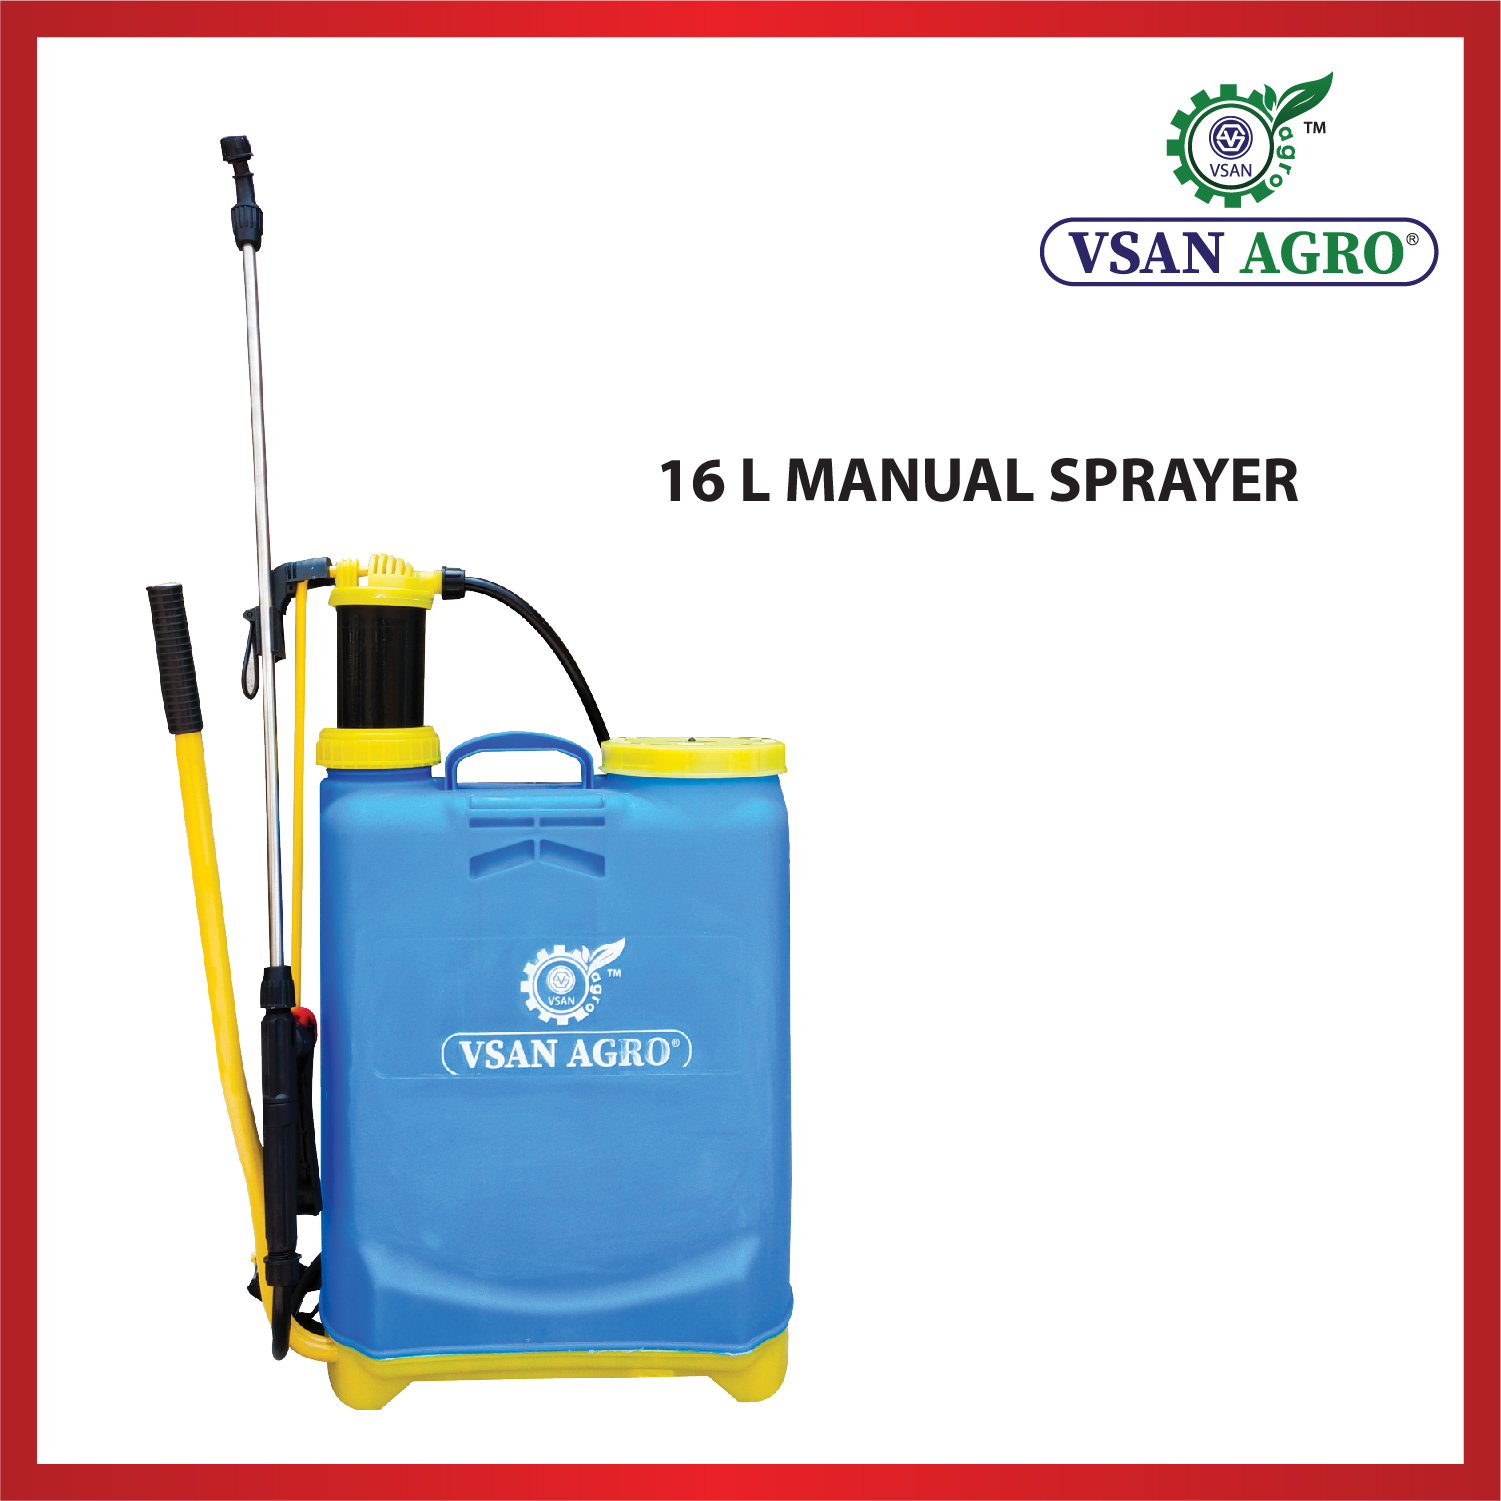 VSAN 16 L Manual Sprayer